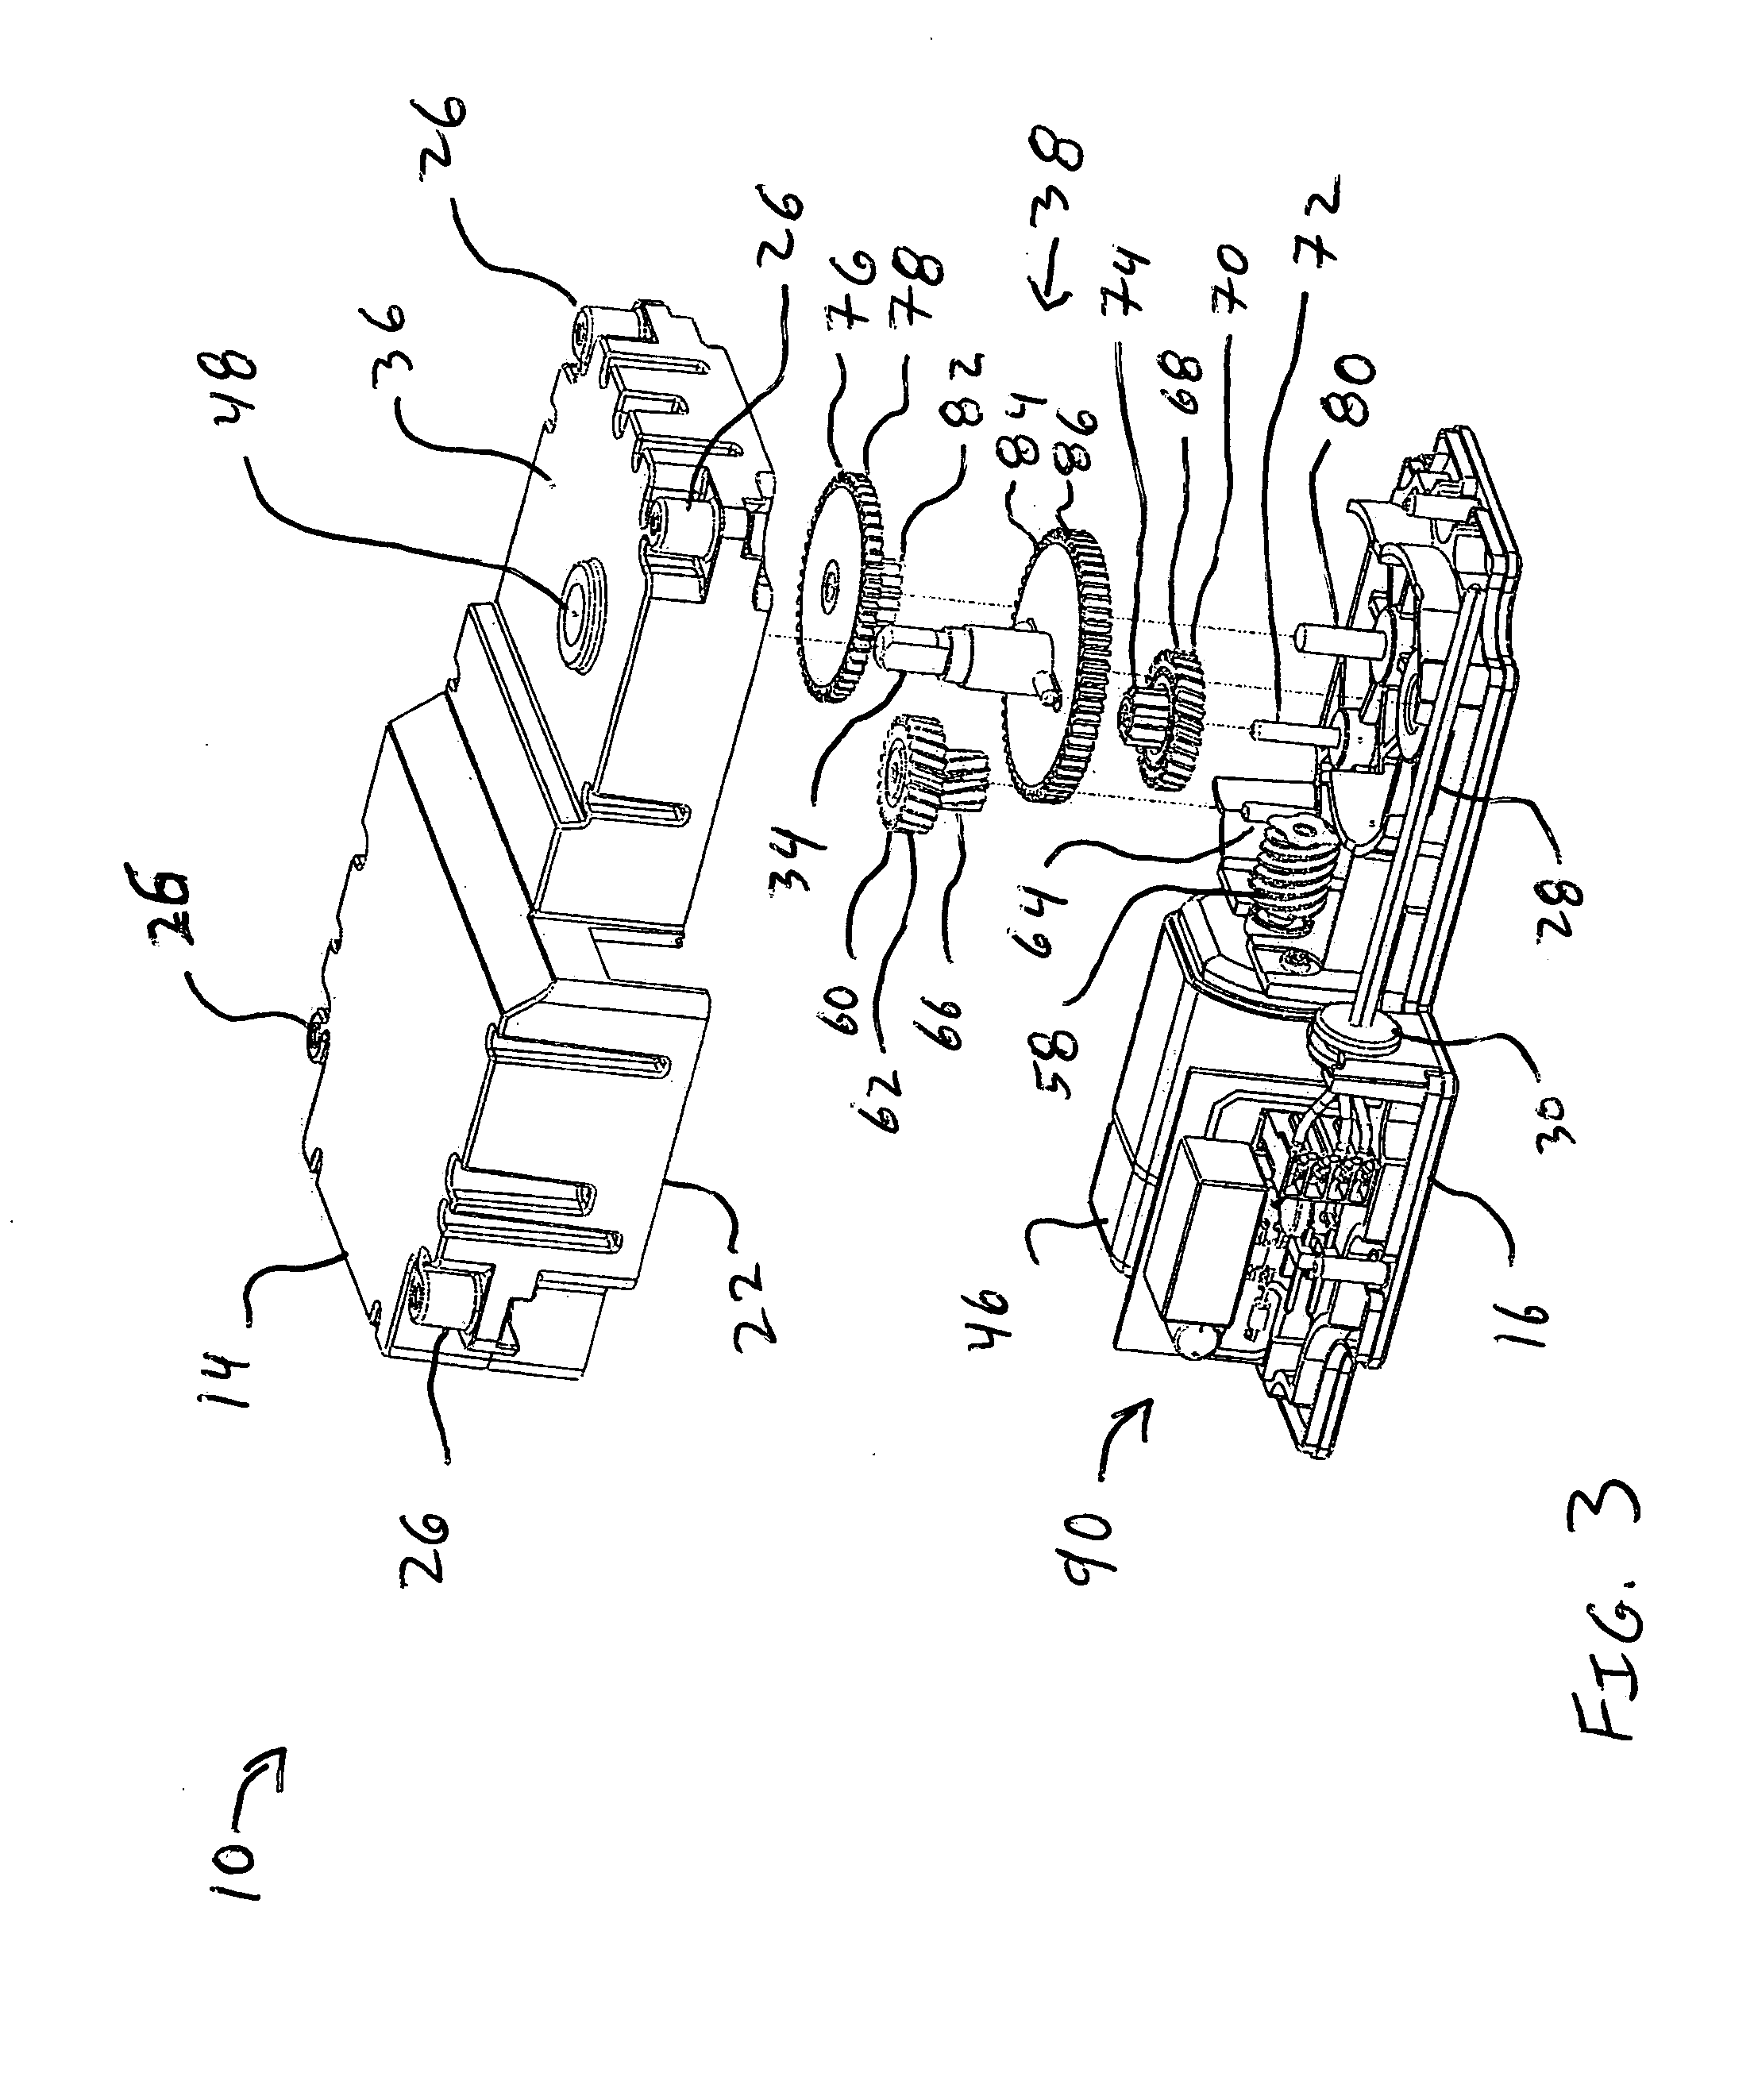 patent us20110239798 - gear box for ice dispenser